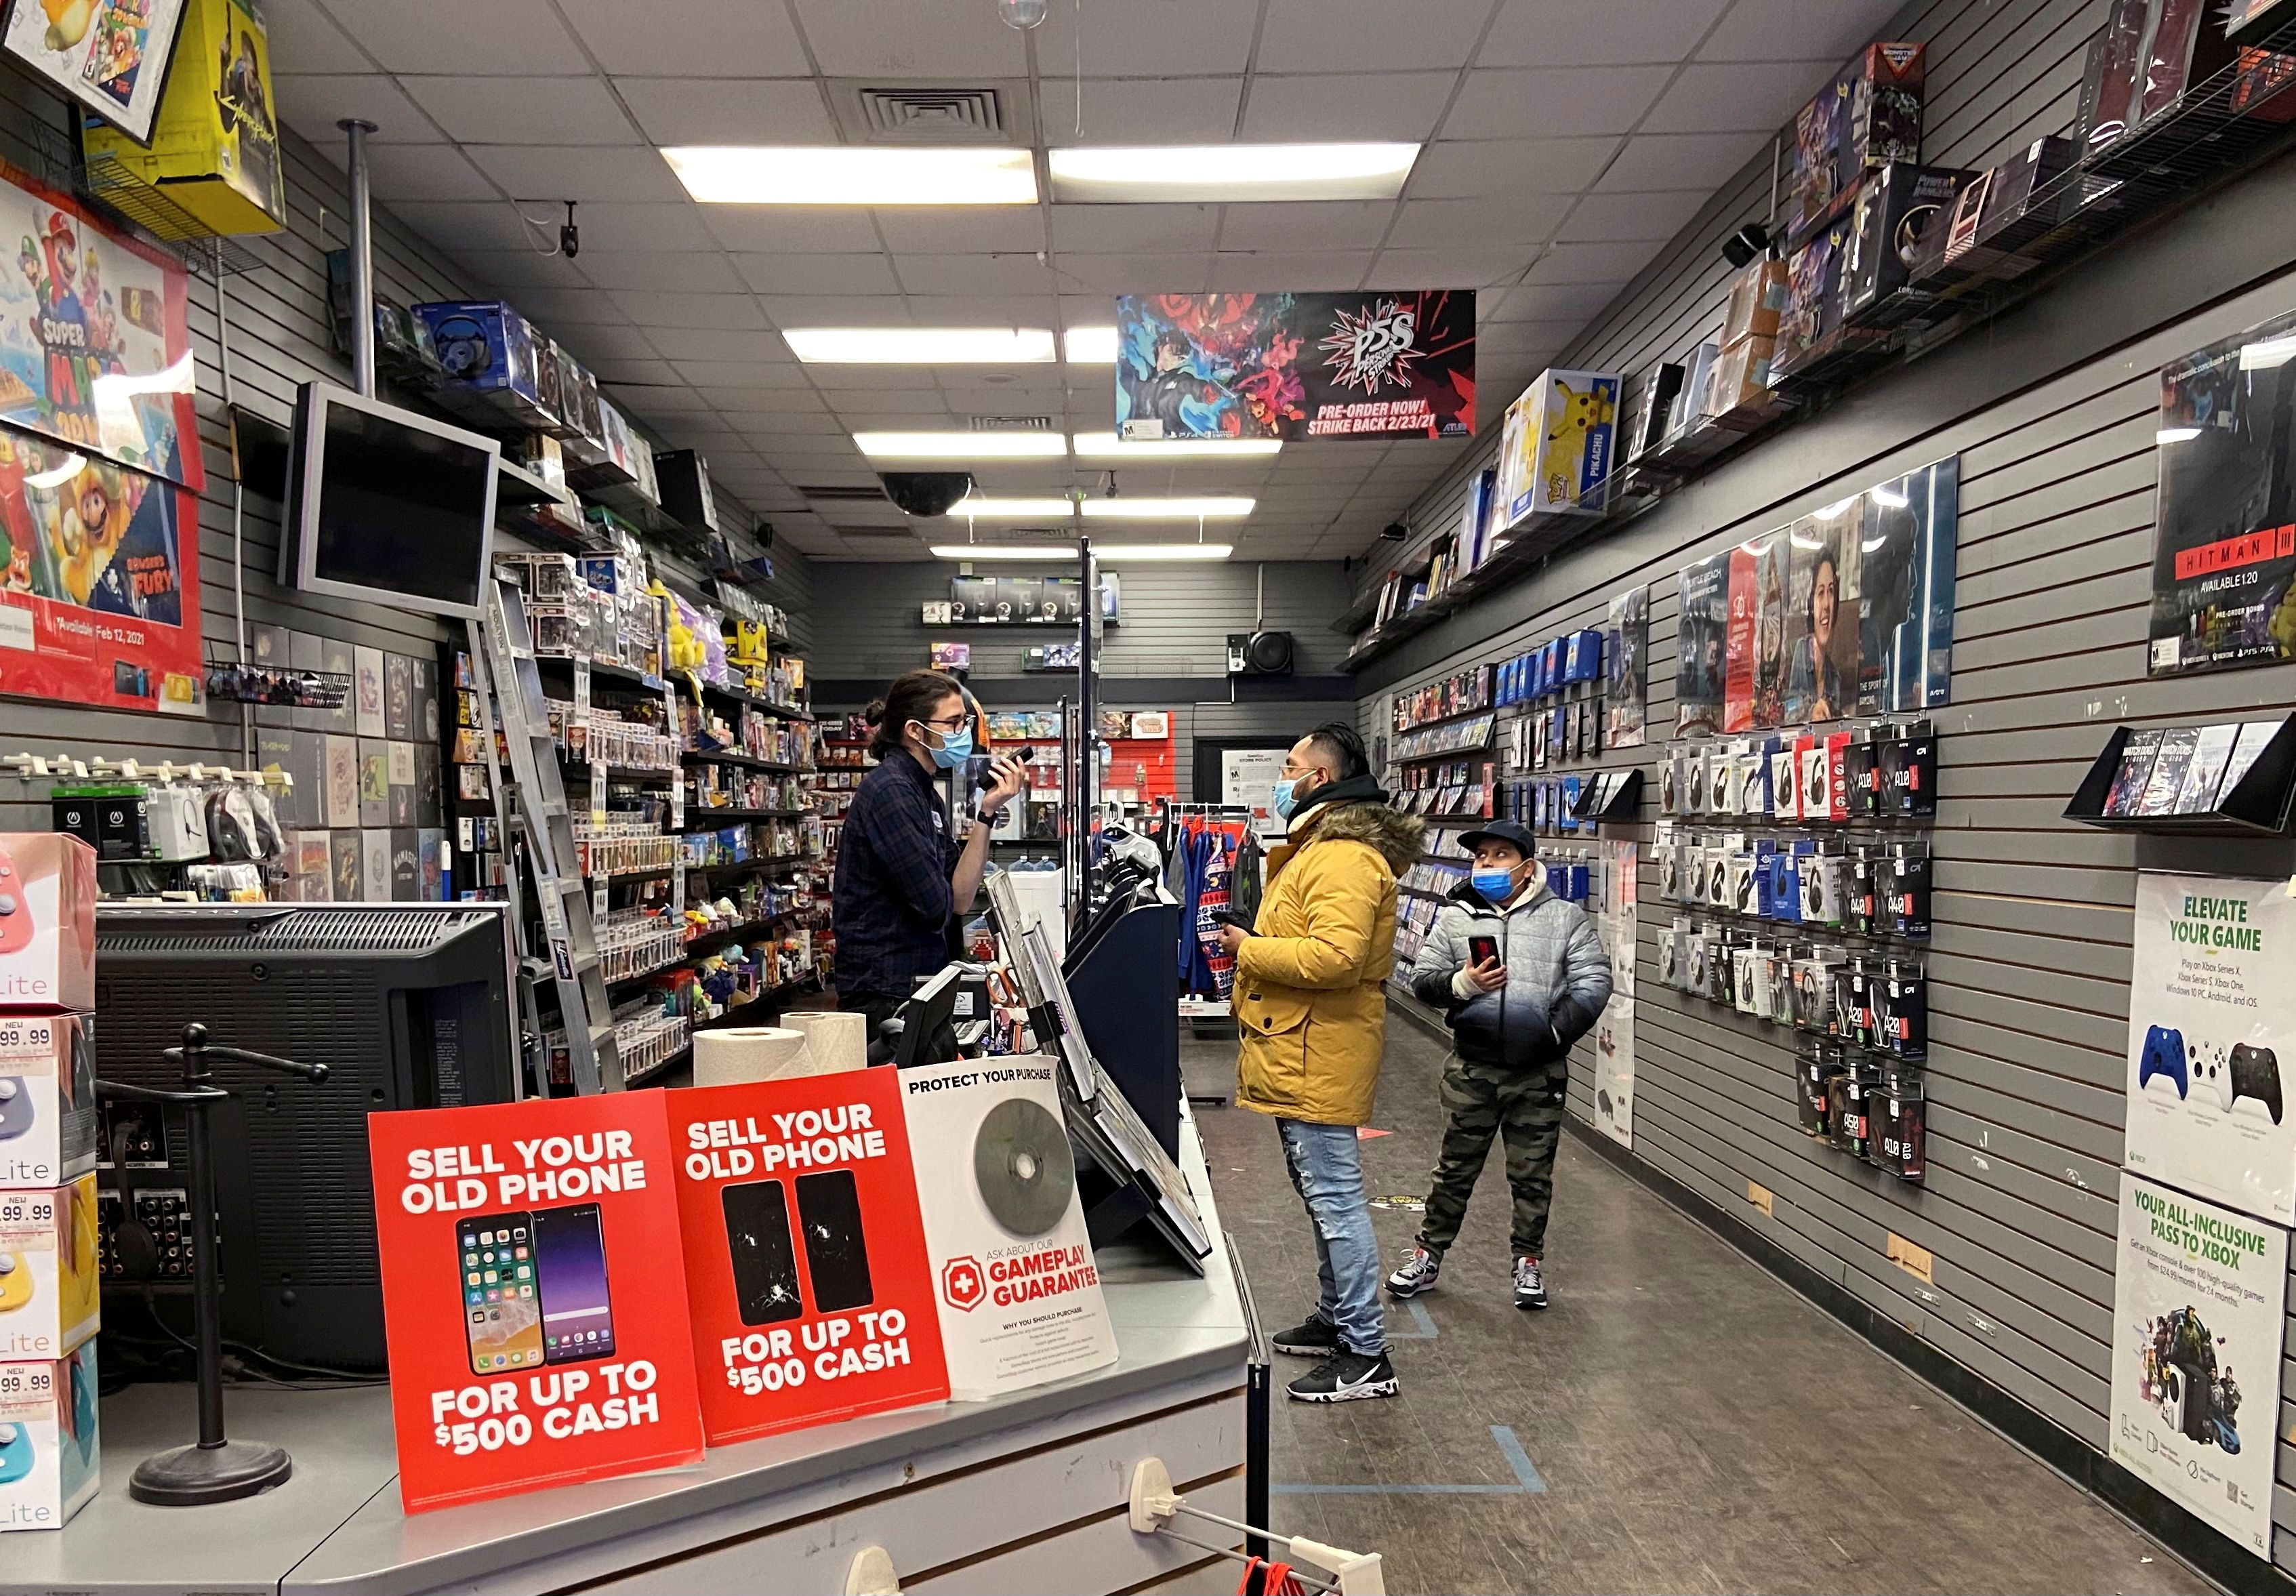 An employee talks with a customer at a GameStop shop in New York City, New York, U.S. January 30, 2021. Picture taken January 30, 2021. REUTERS/Nick Zieminski/File Photo